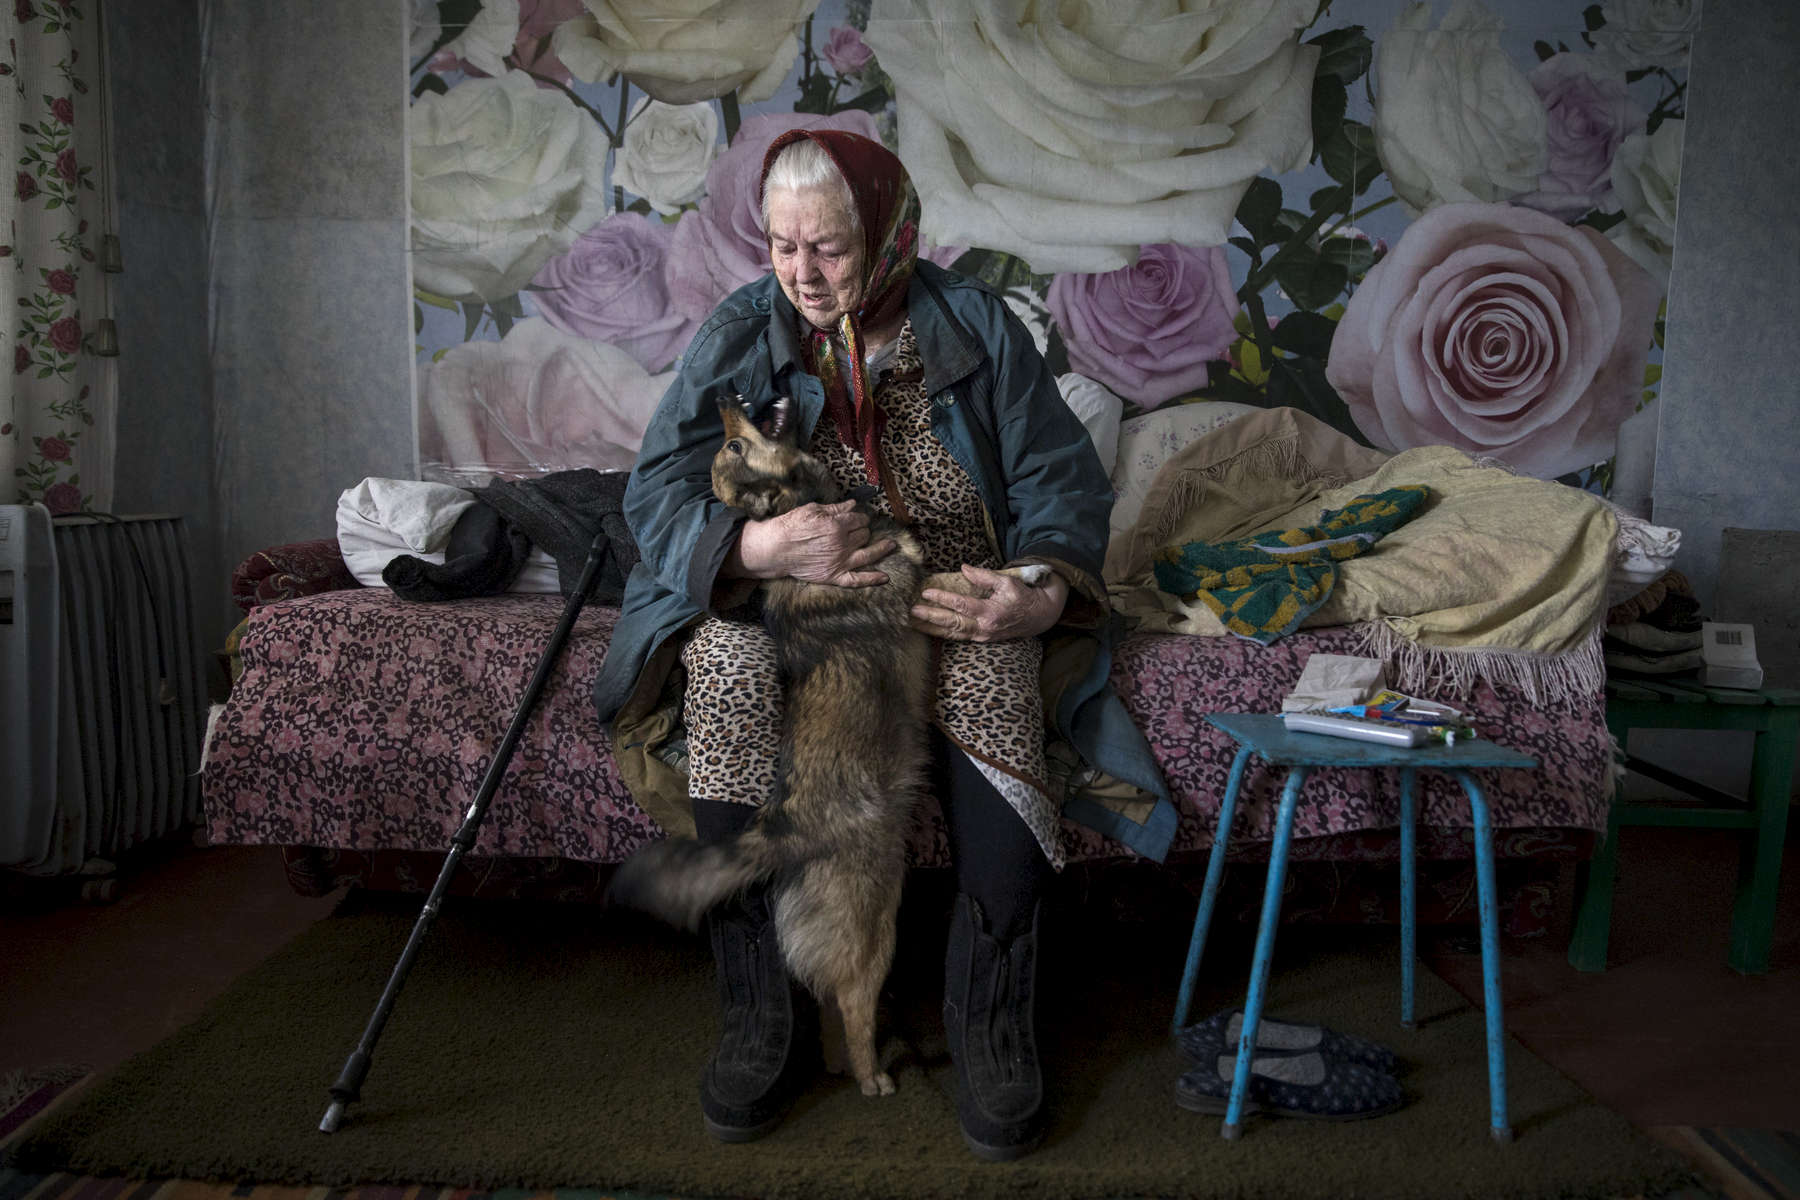 Varvara Arkhipovna, age 81 lives alone on a small pension in Katerinovka, Lugansk region which has a population of less than 300 people as the village is exposed to the sniper fire as the contact line lays just over the hill a few kilometers away. Varvara lives with a puppy that was recently given to her by a health worker in order to improve her mental health as she suffers from depression and high blood pressure. Her family lives in Pervomaisk, a village in Lugansk region on the other side of the front line. She hasn't been able to see her 3 grandchildren in 4 years – since the beginning of the war even though they live only 3 kilometers away.